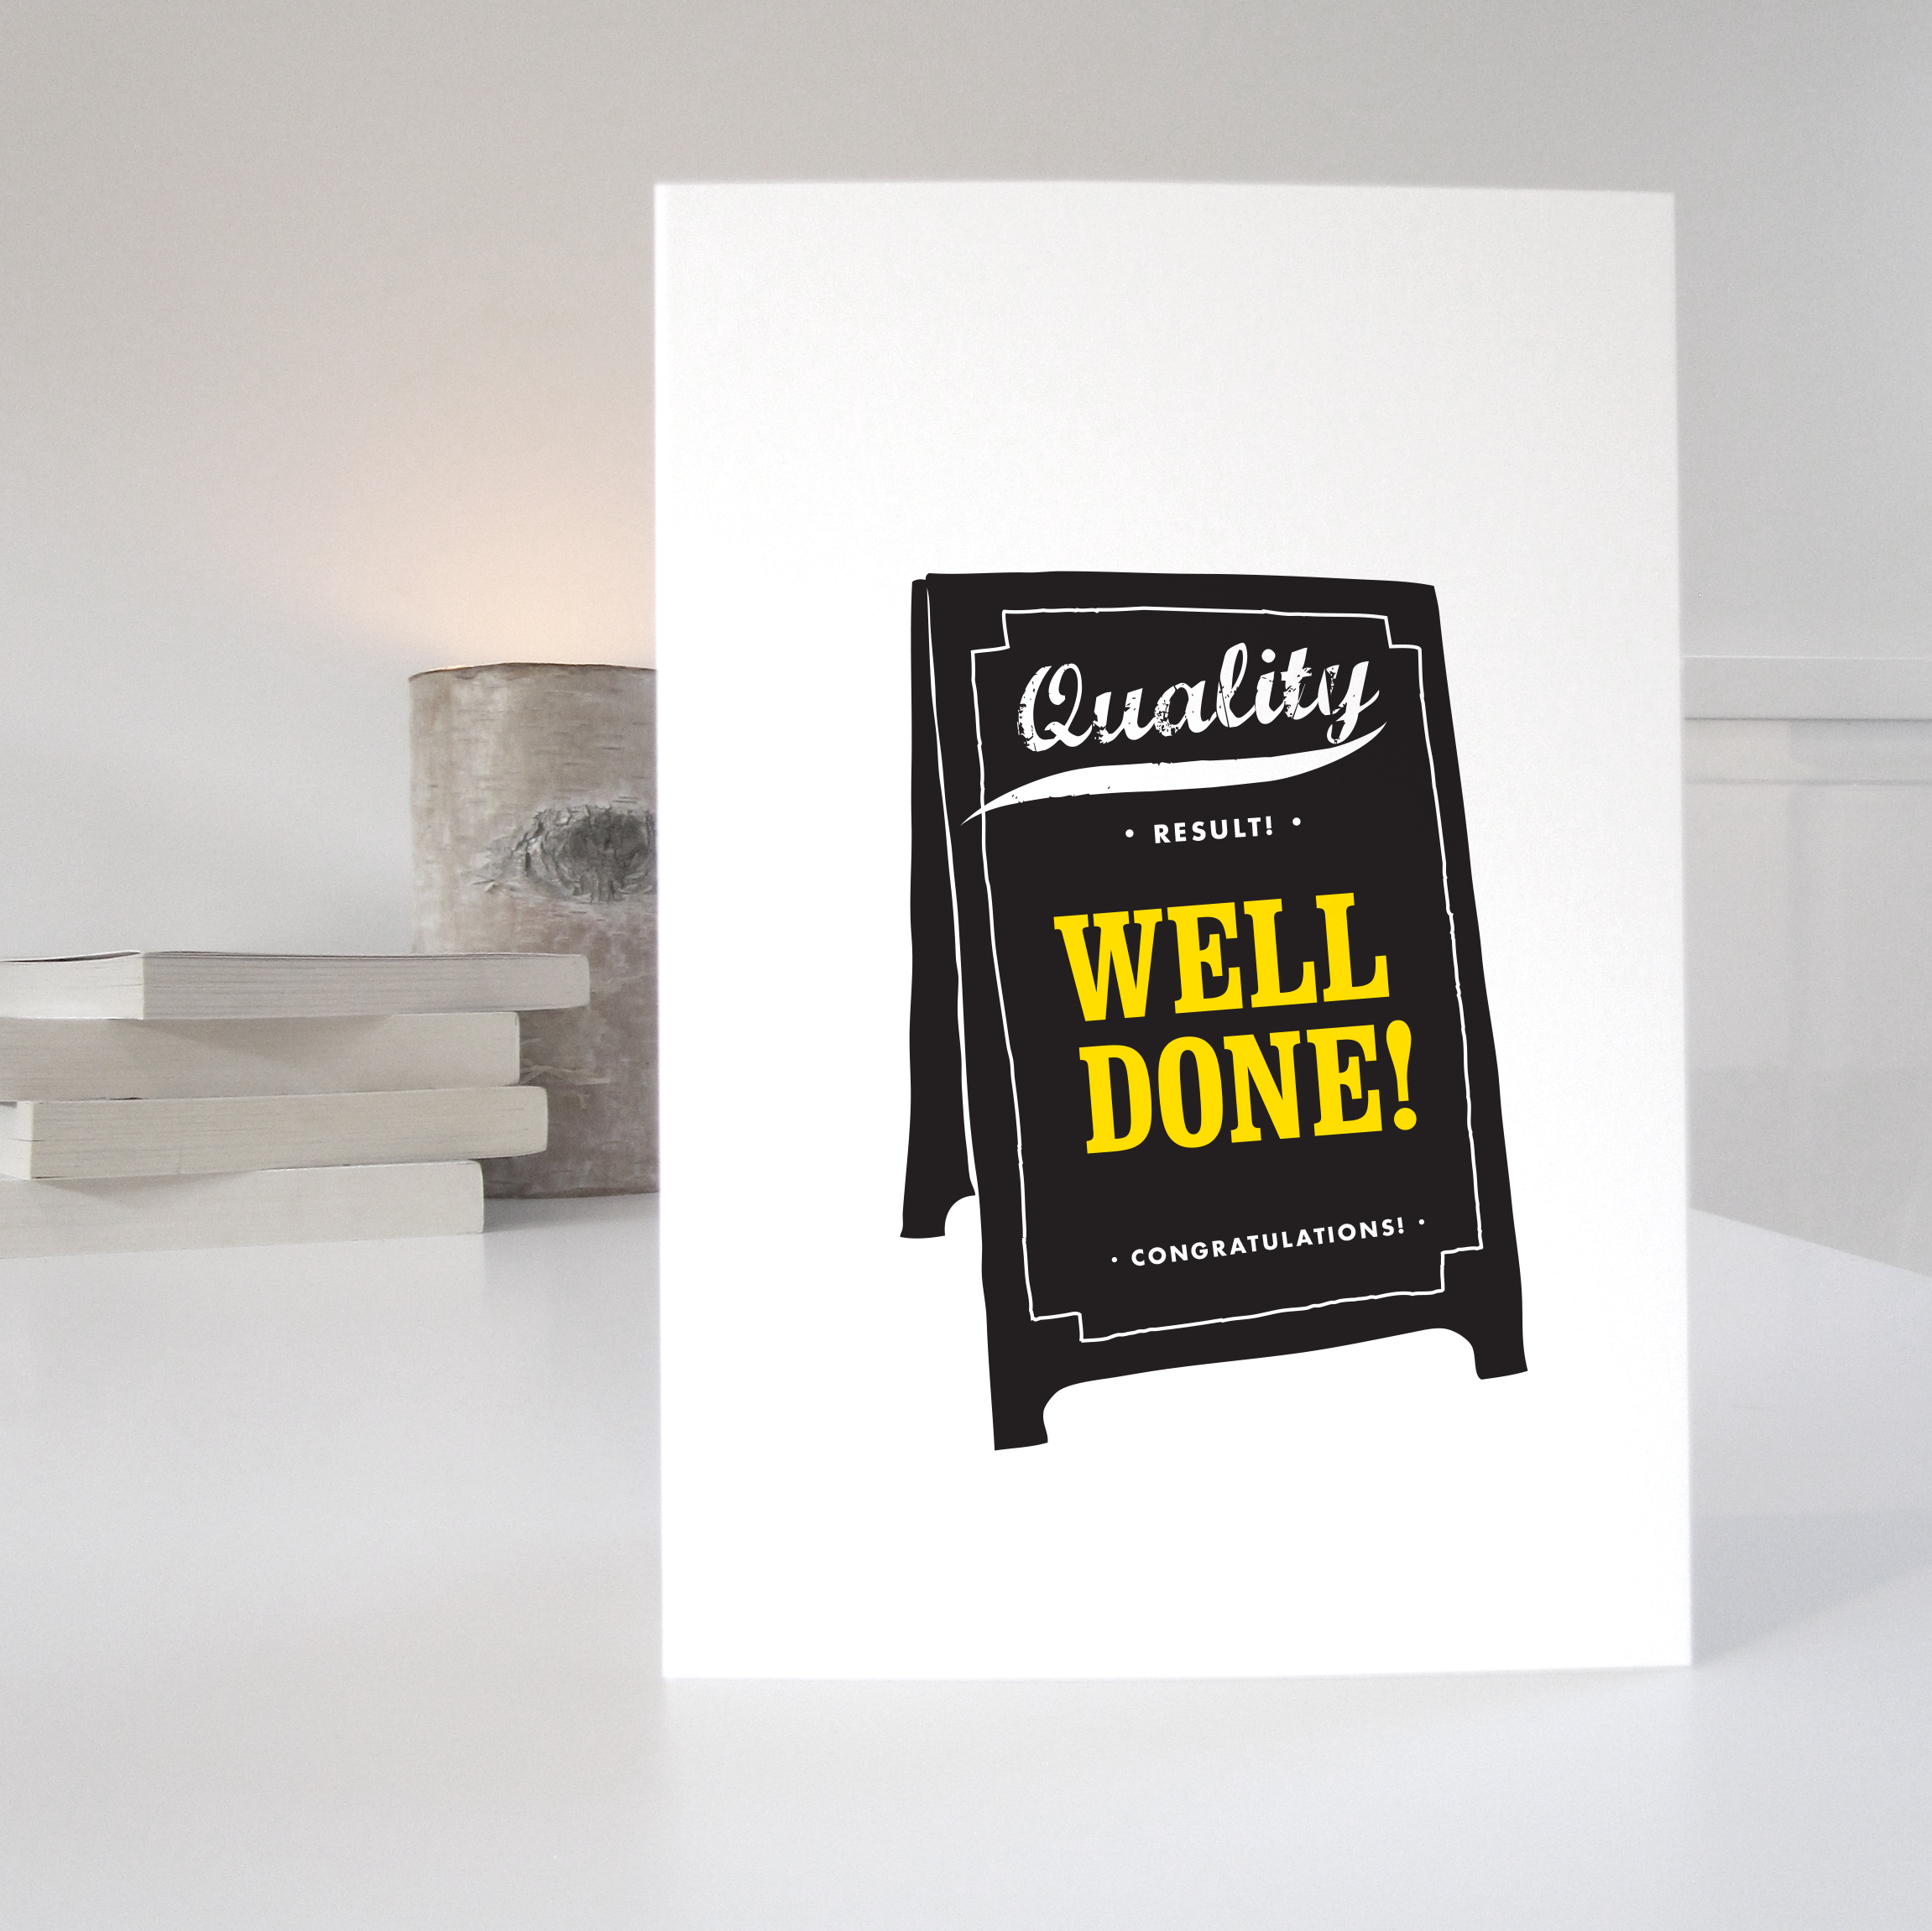 SAS_WD_well done